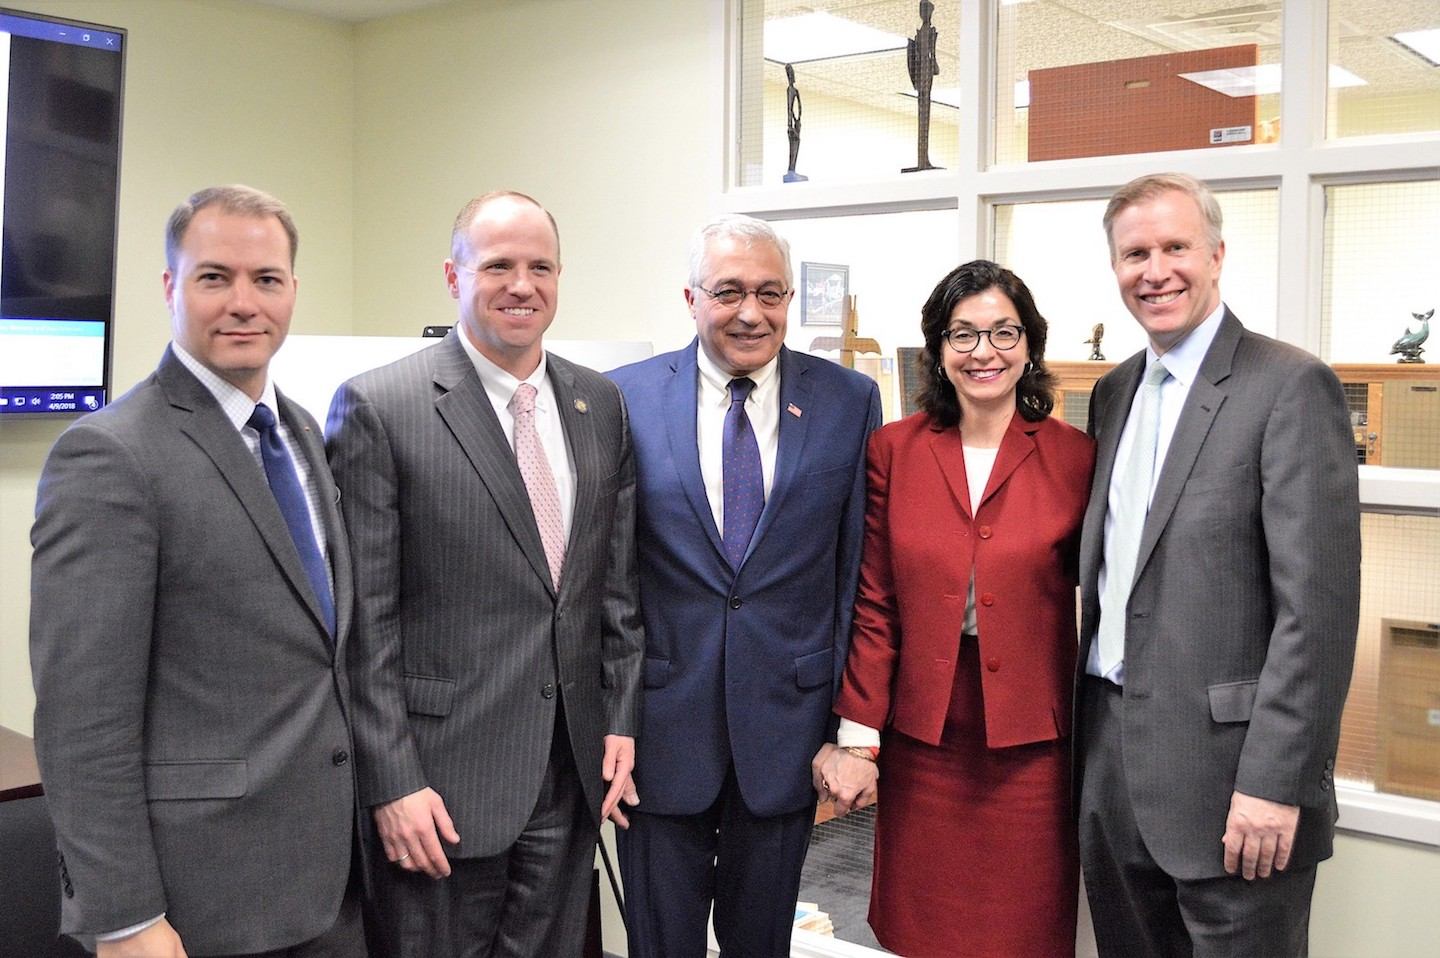 Pictured making the announcement of $450,000 in funding for Save the Michaels of the World are, from left, New York State Sen. Robert Ortt, Sen. Tim Kennedy, Save the Michaels President Avi Israel and his wife, Julie, and Sen. Chris Jacobs.